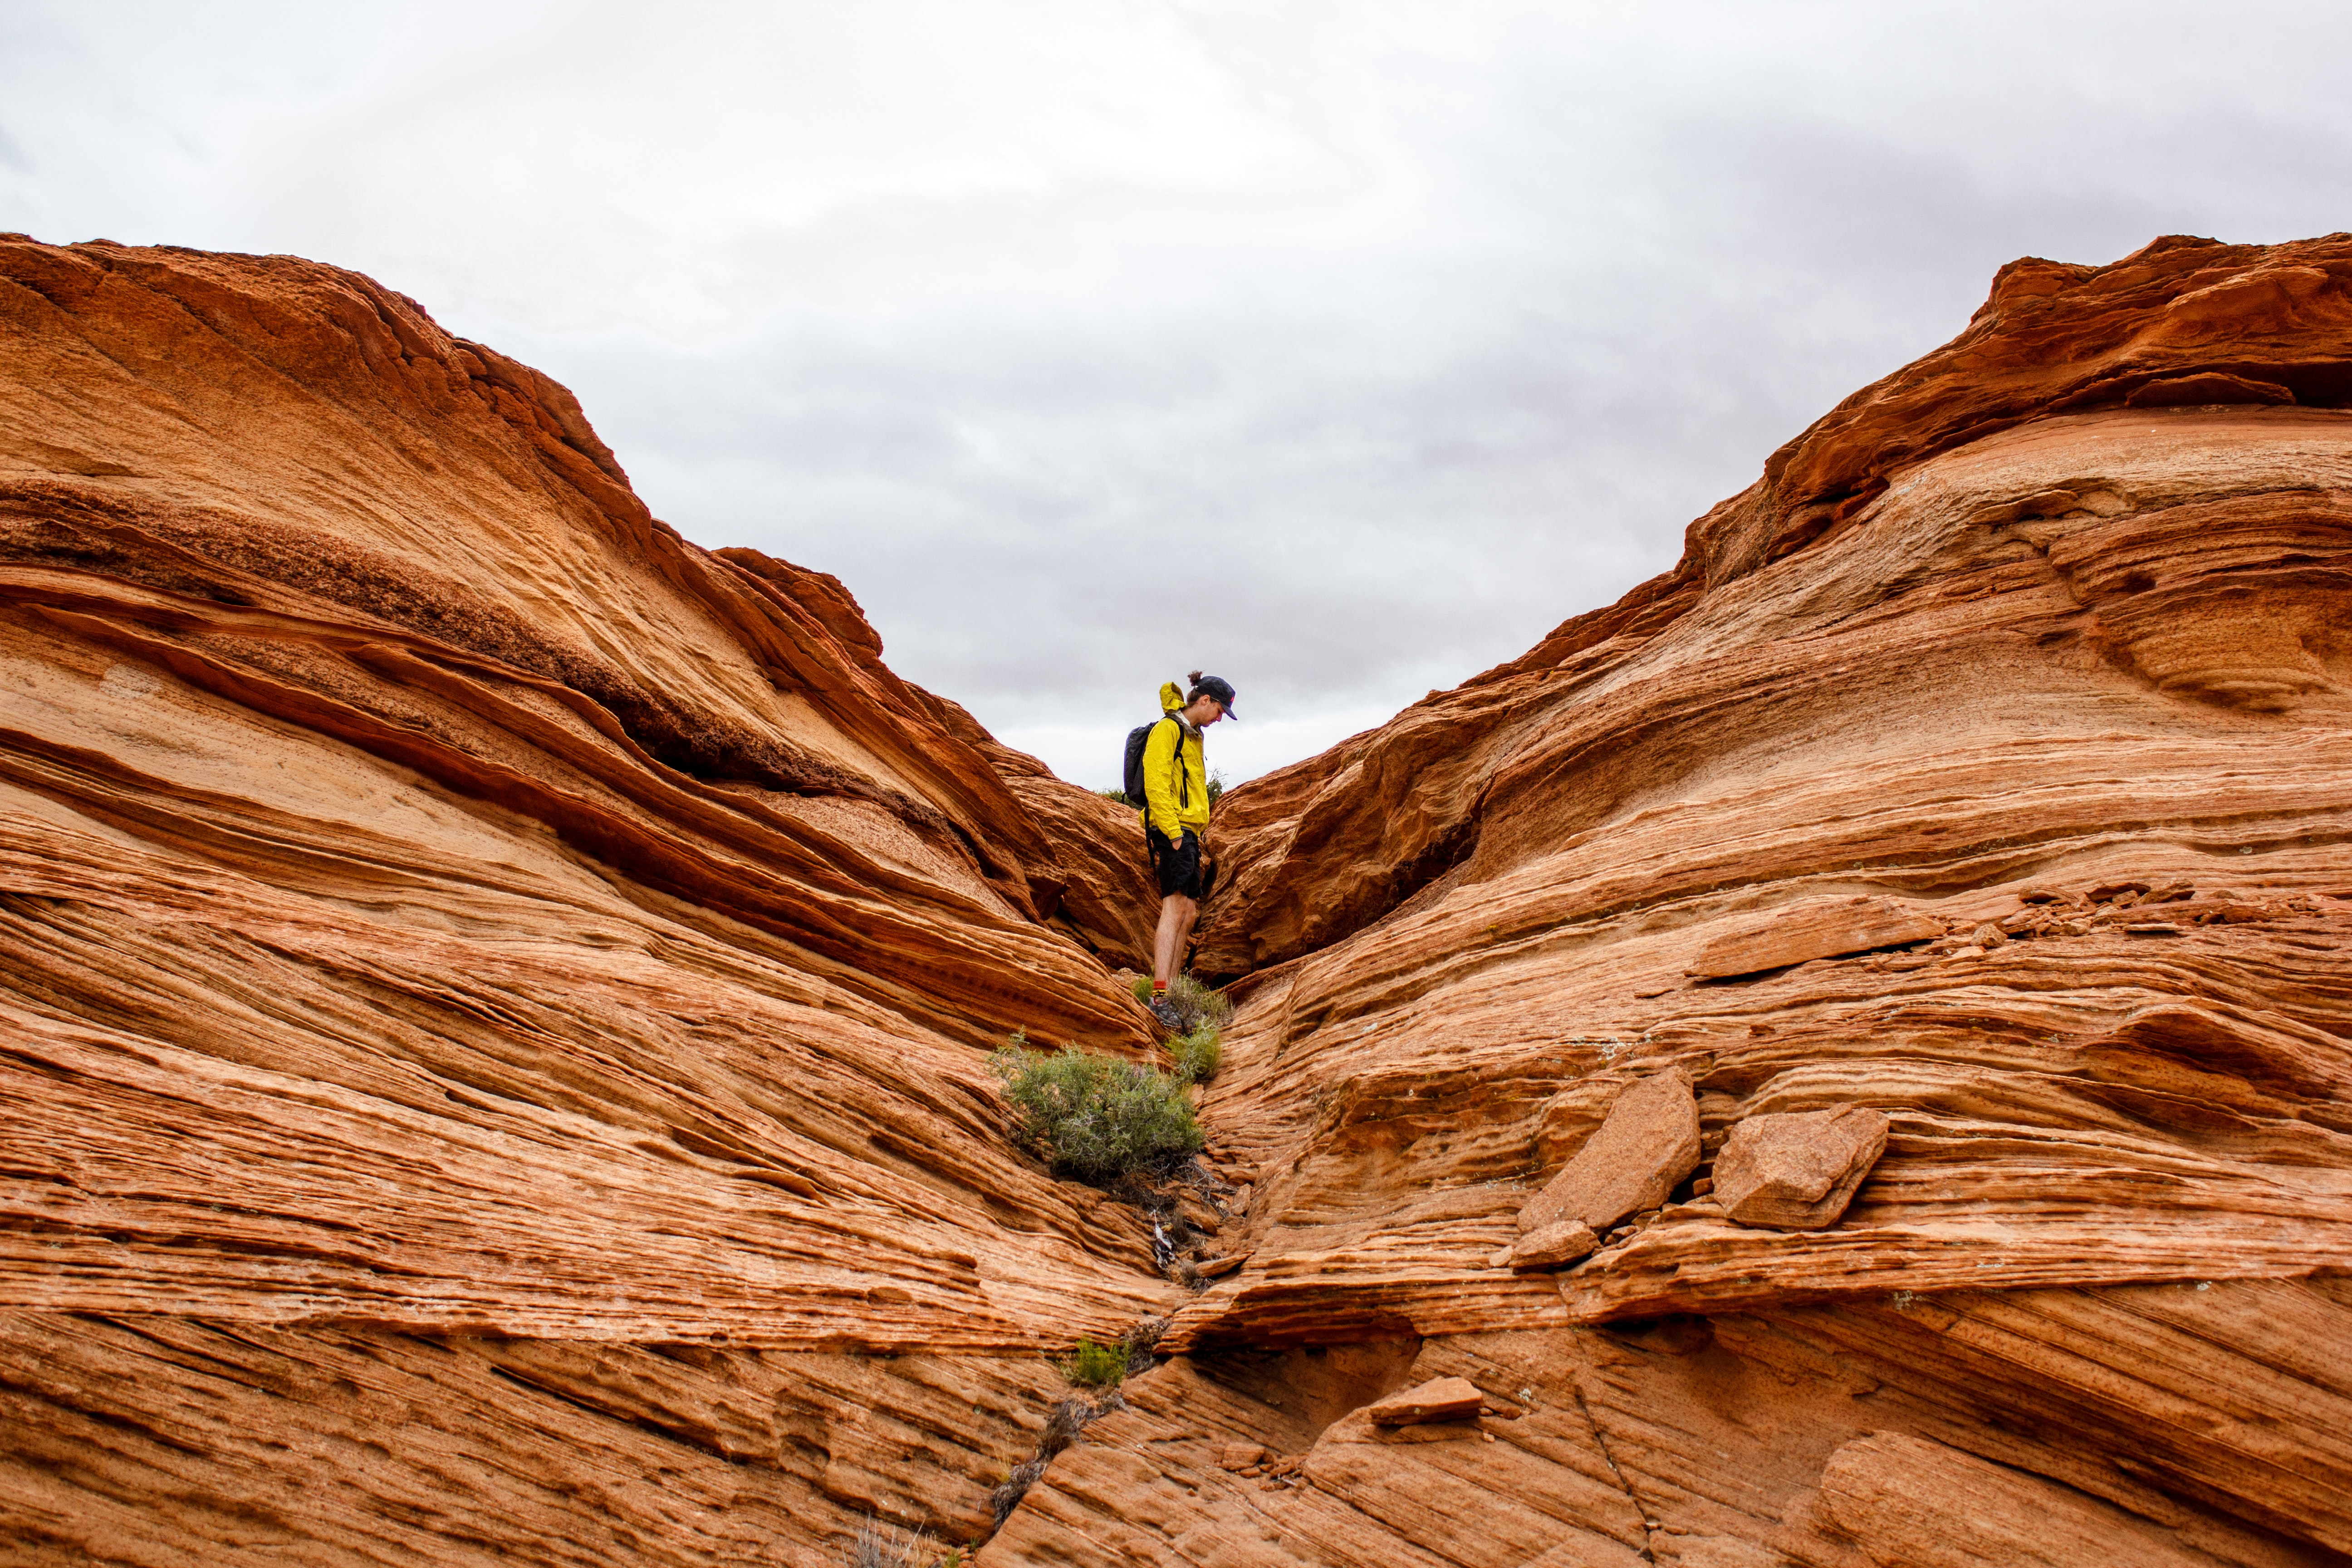 Person standing in between orange rocks at Grand Canyon National Park